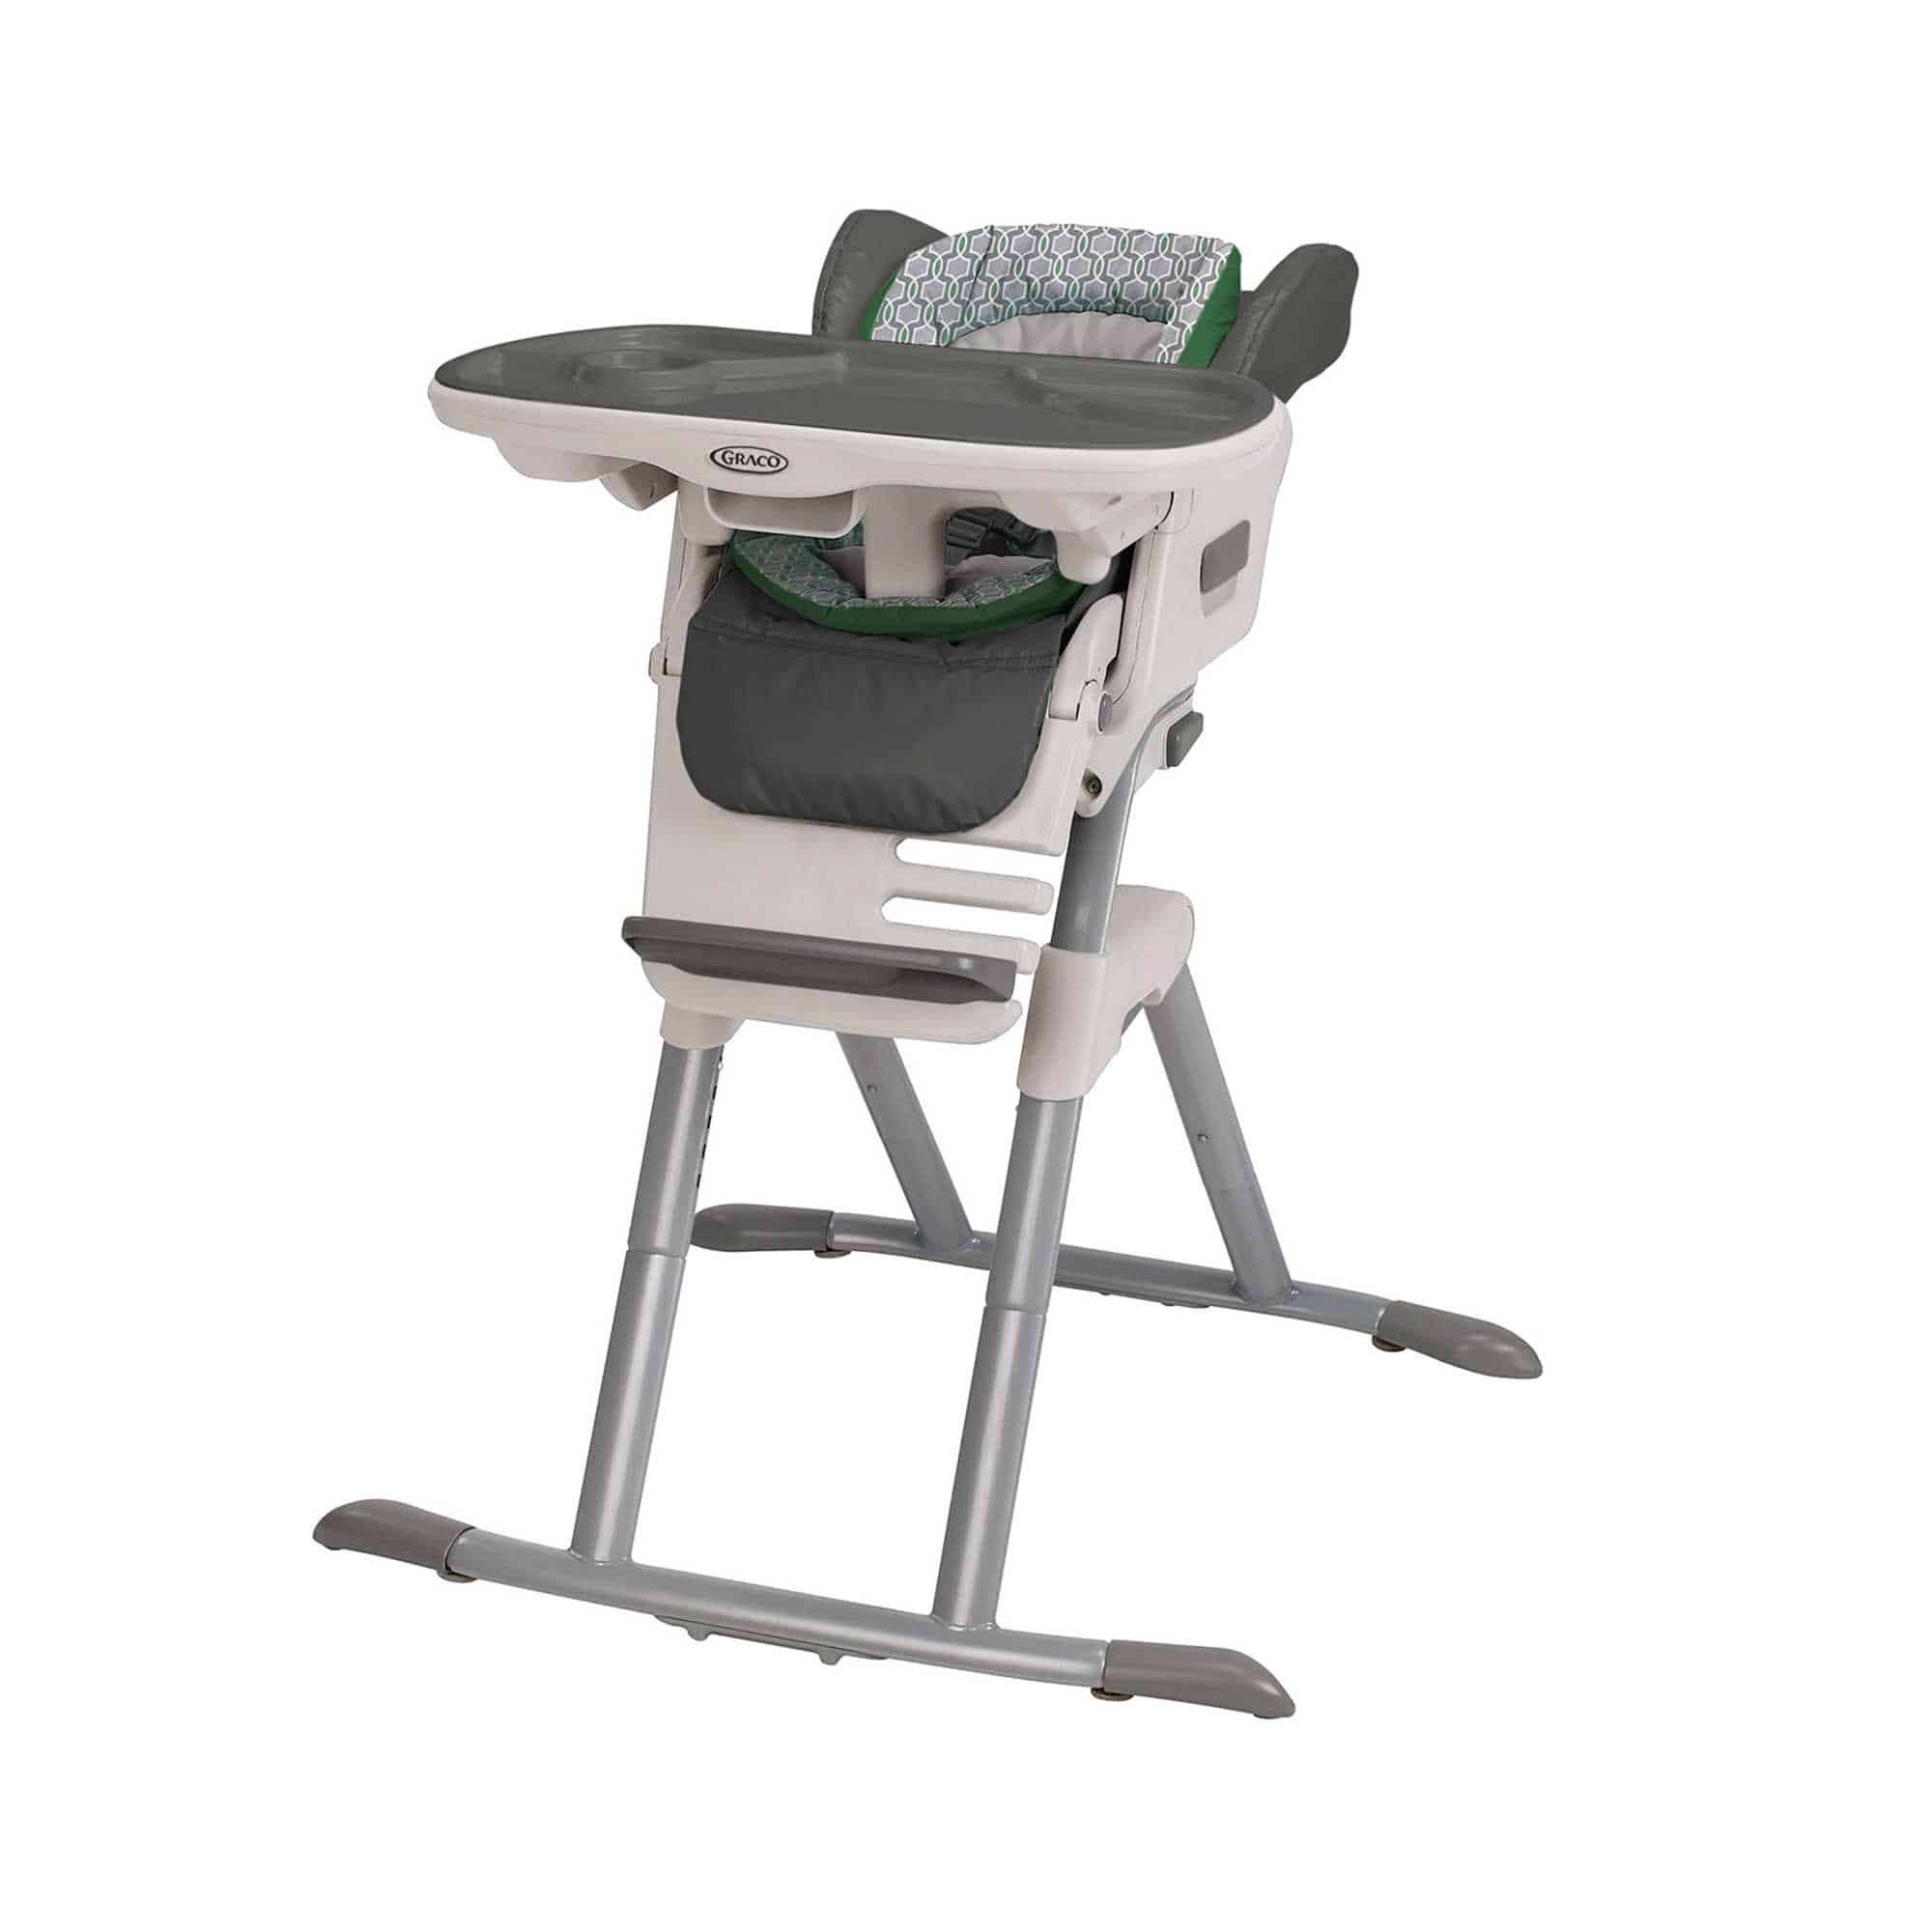 New Gallery Graco 4 In 1 High Chair 14 Graco High Chair